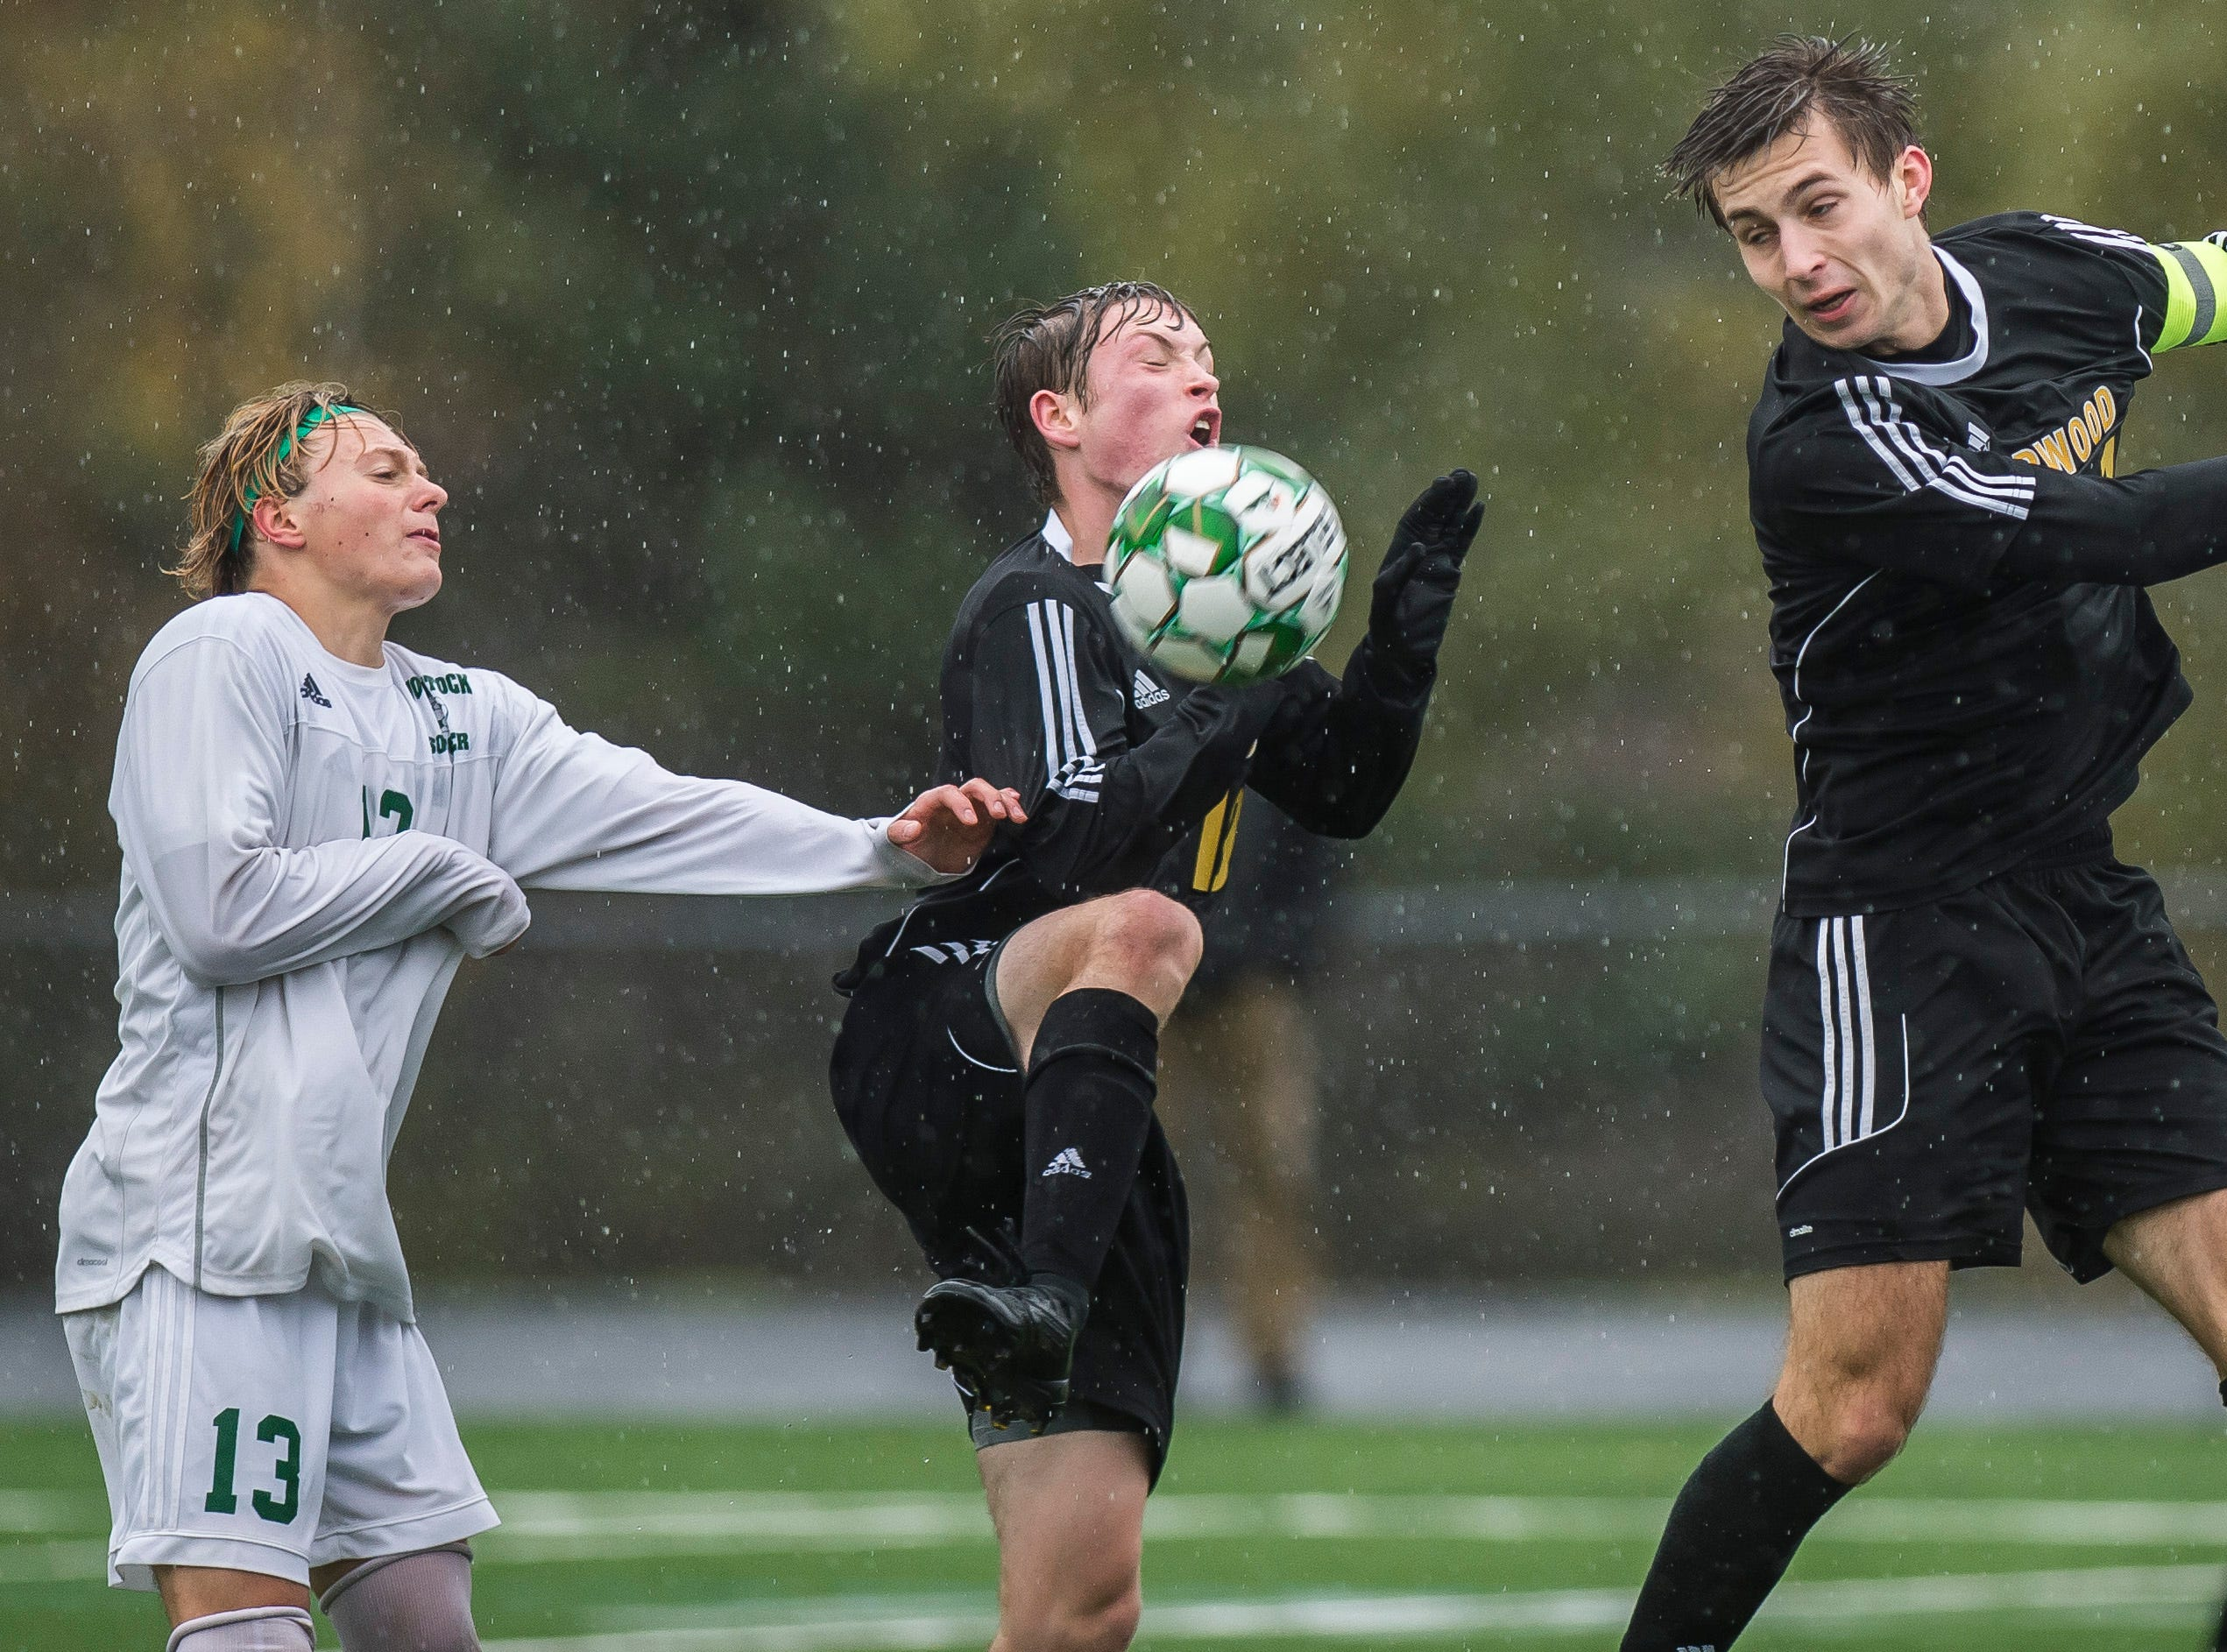 Woodstock #13 Isaac Emery and Harwood #19 Duncan Weinman and  #14 Wyatt Adams all fight for the ball during their Div. 2 Vermont State high school boy's soccer championship game at South Burlington High School on Saturday, Nov. 3, 2018. Hardwood Union won, 3-0.